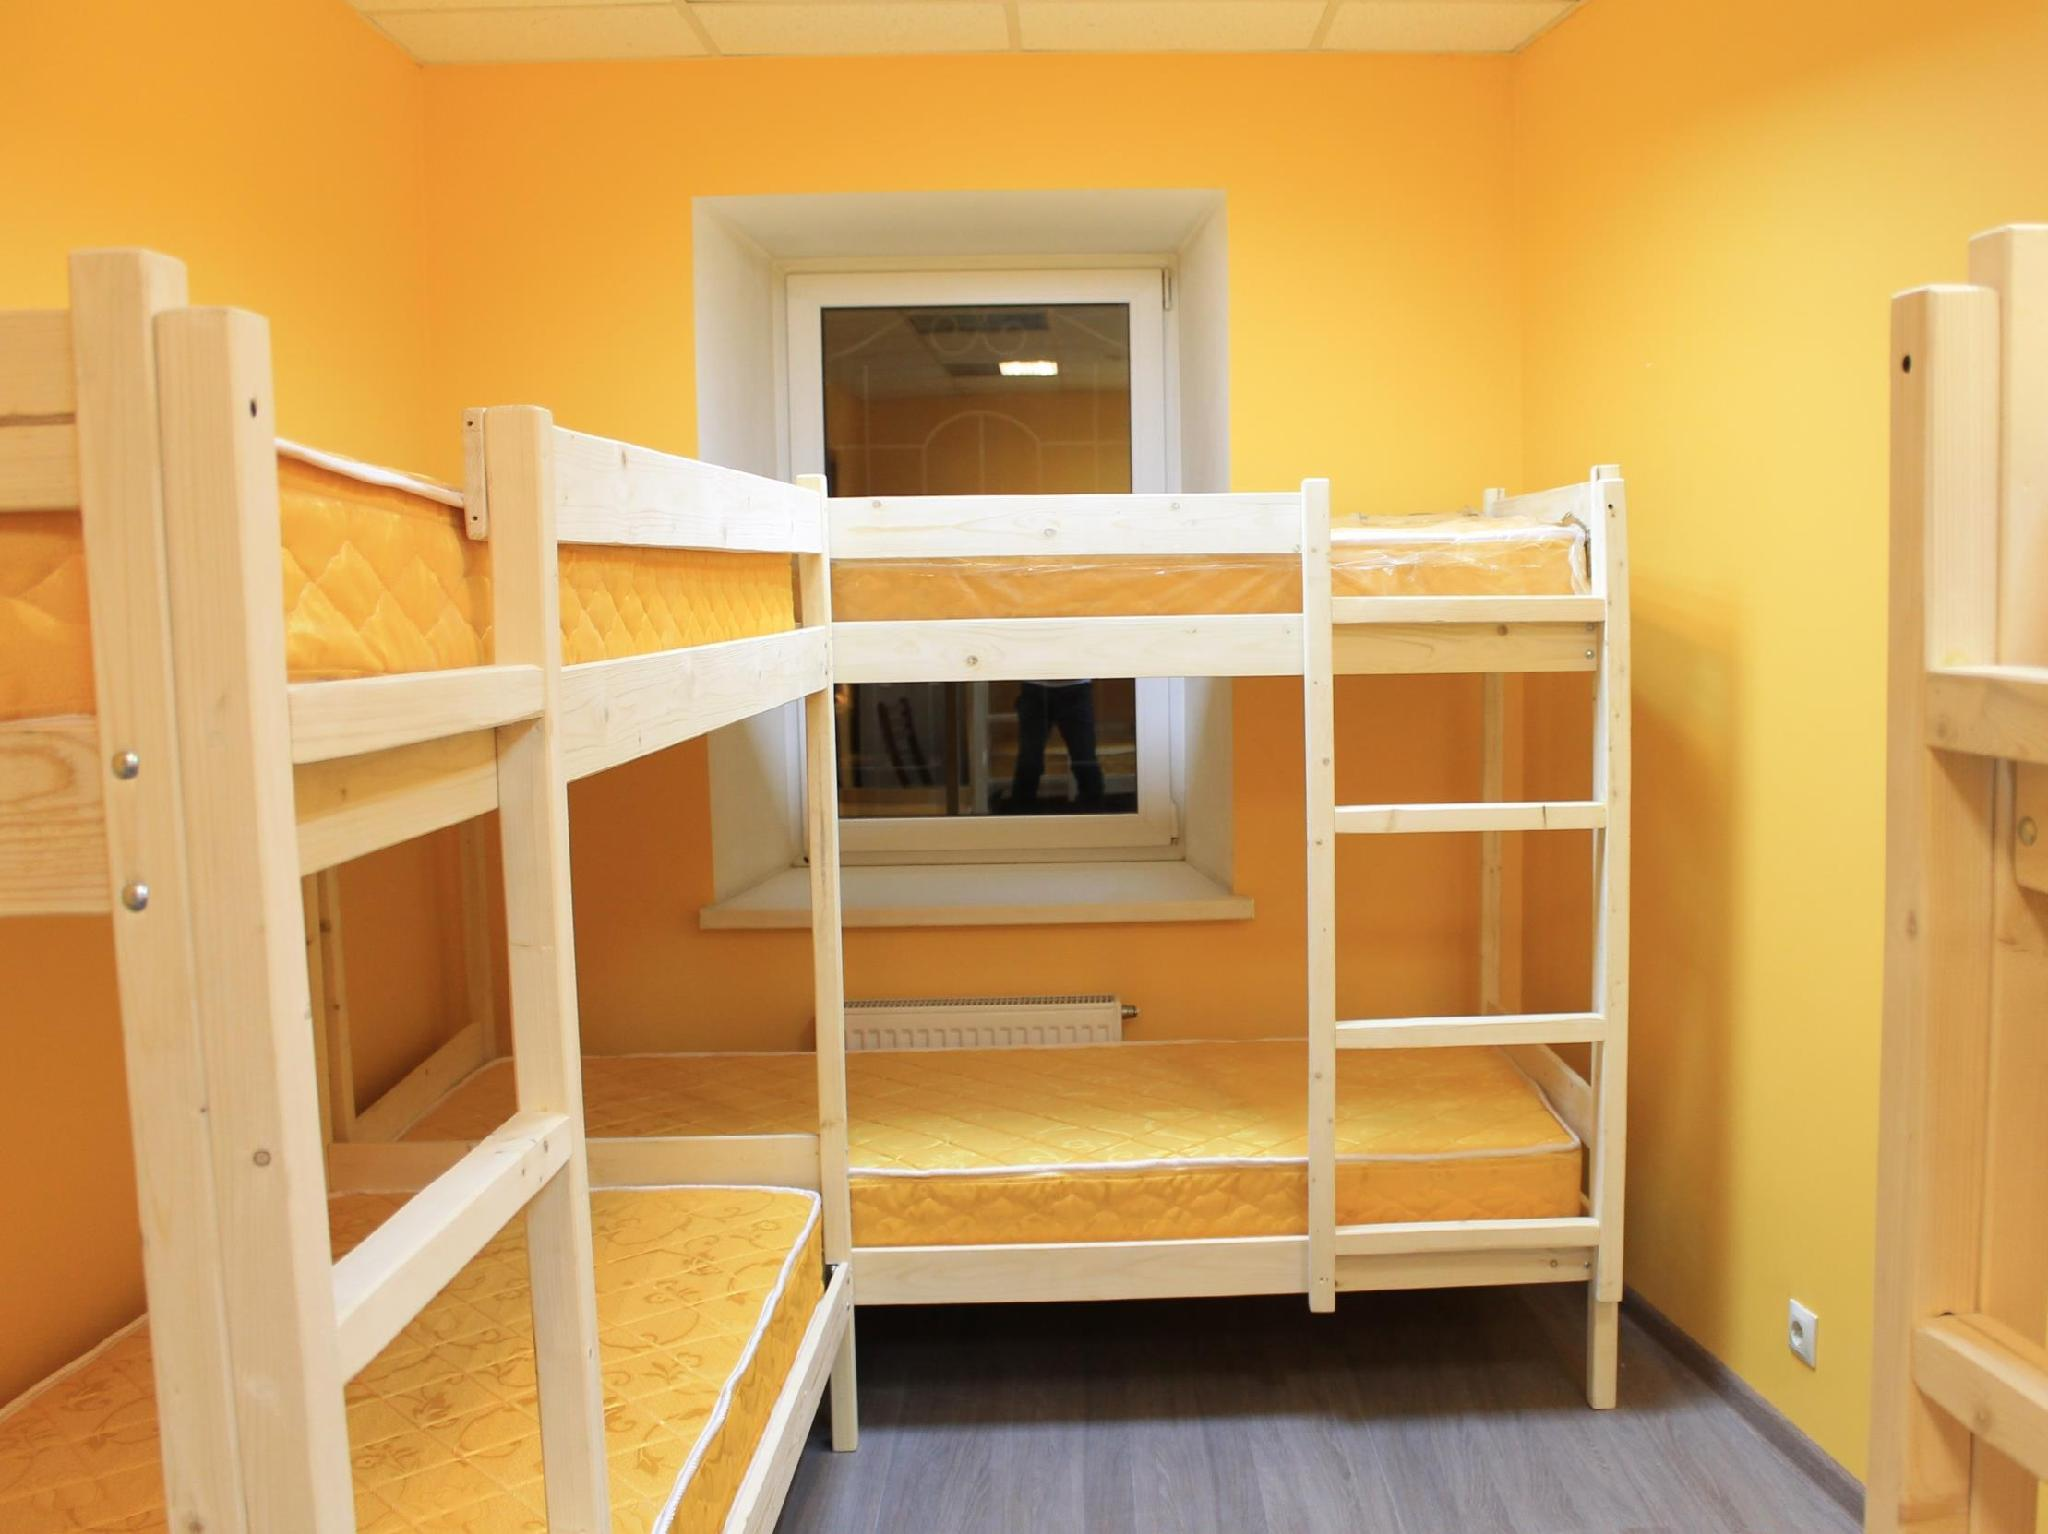 8-Bed Dormitory - Mixed